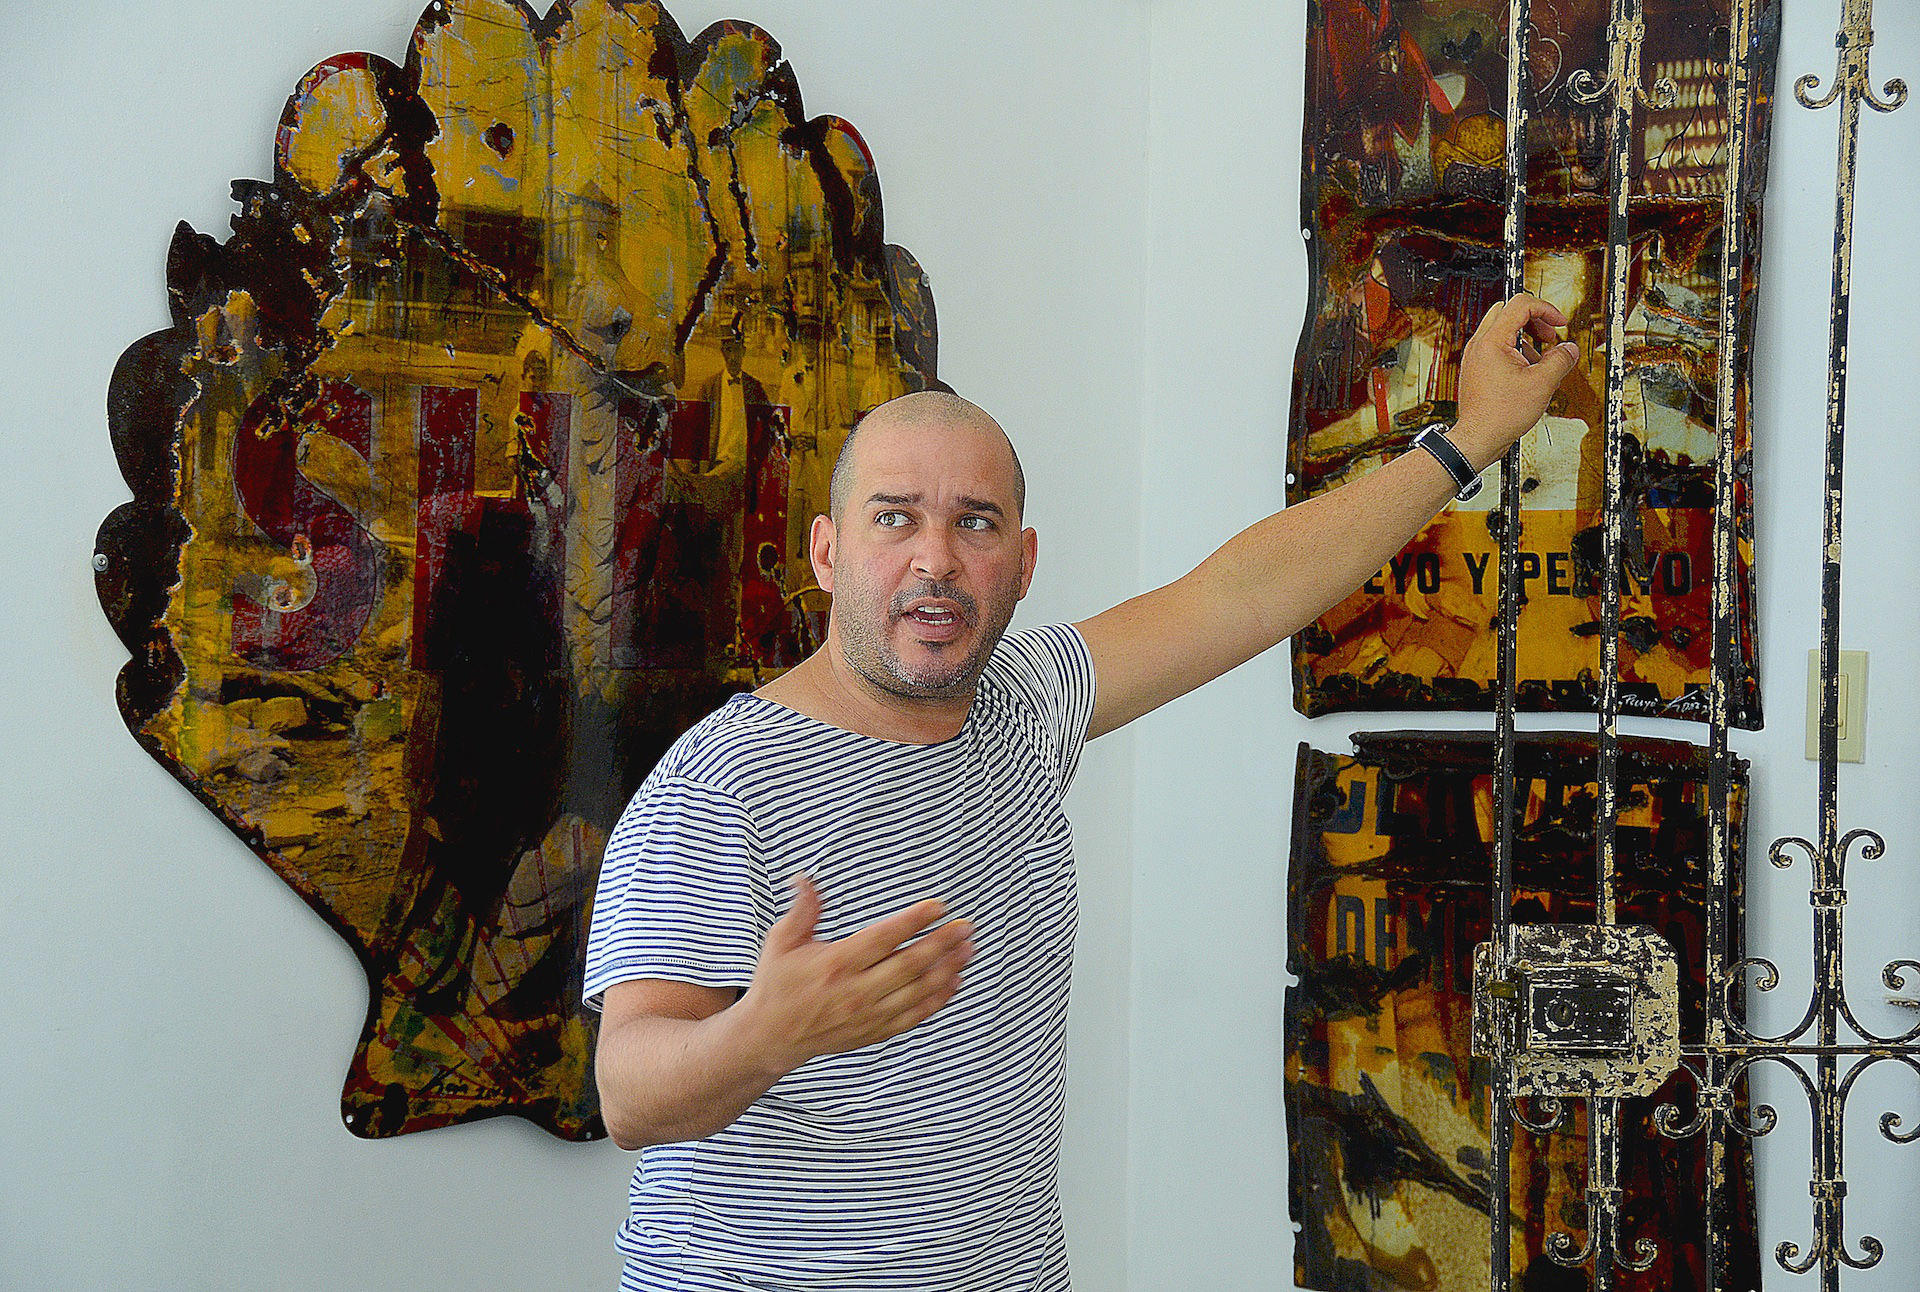 Artist in Cuba explains and showcases work for private studio visit as highlight of educational music and arts tour